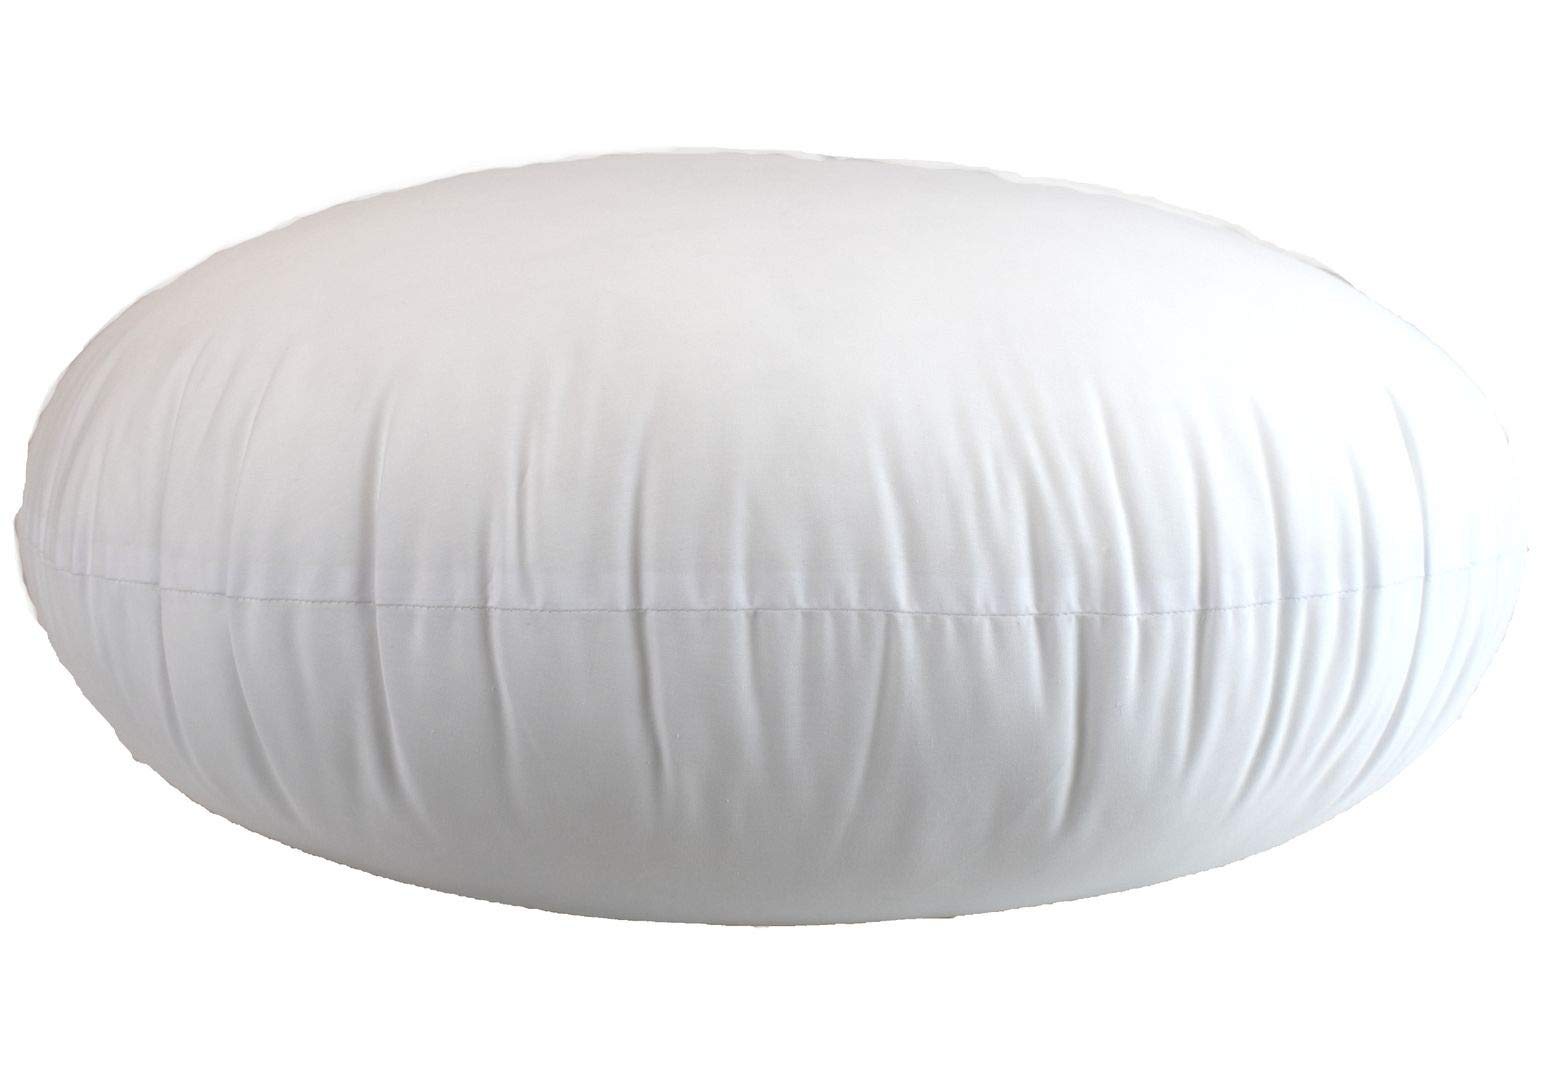 MoonRest Round Pillow Insert Hypoallergenic Polyester Form Stuffer-%100 Cotton Blend Covering for Sofa Sham, Decorative Pillow, Cushion and Bed - 12 X 12 Inch